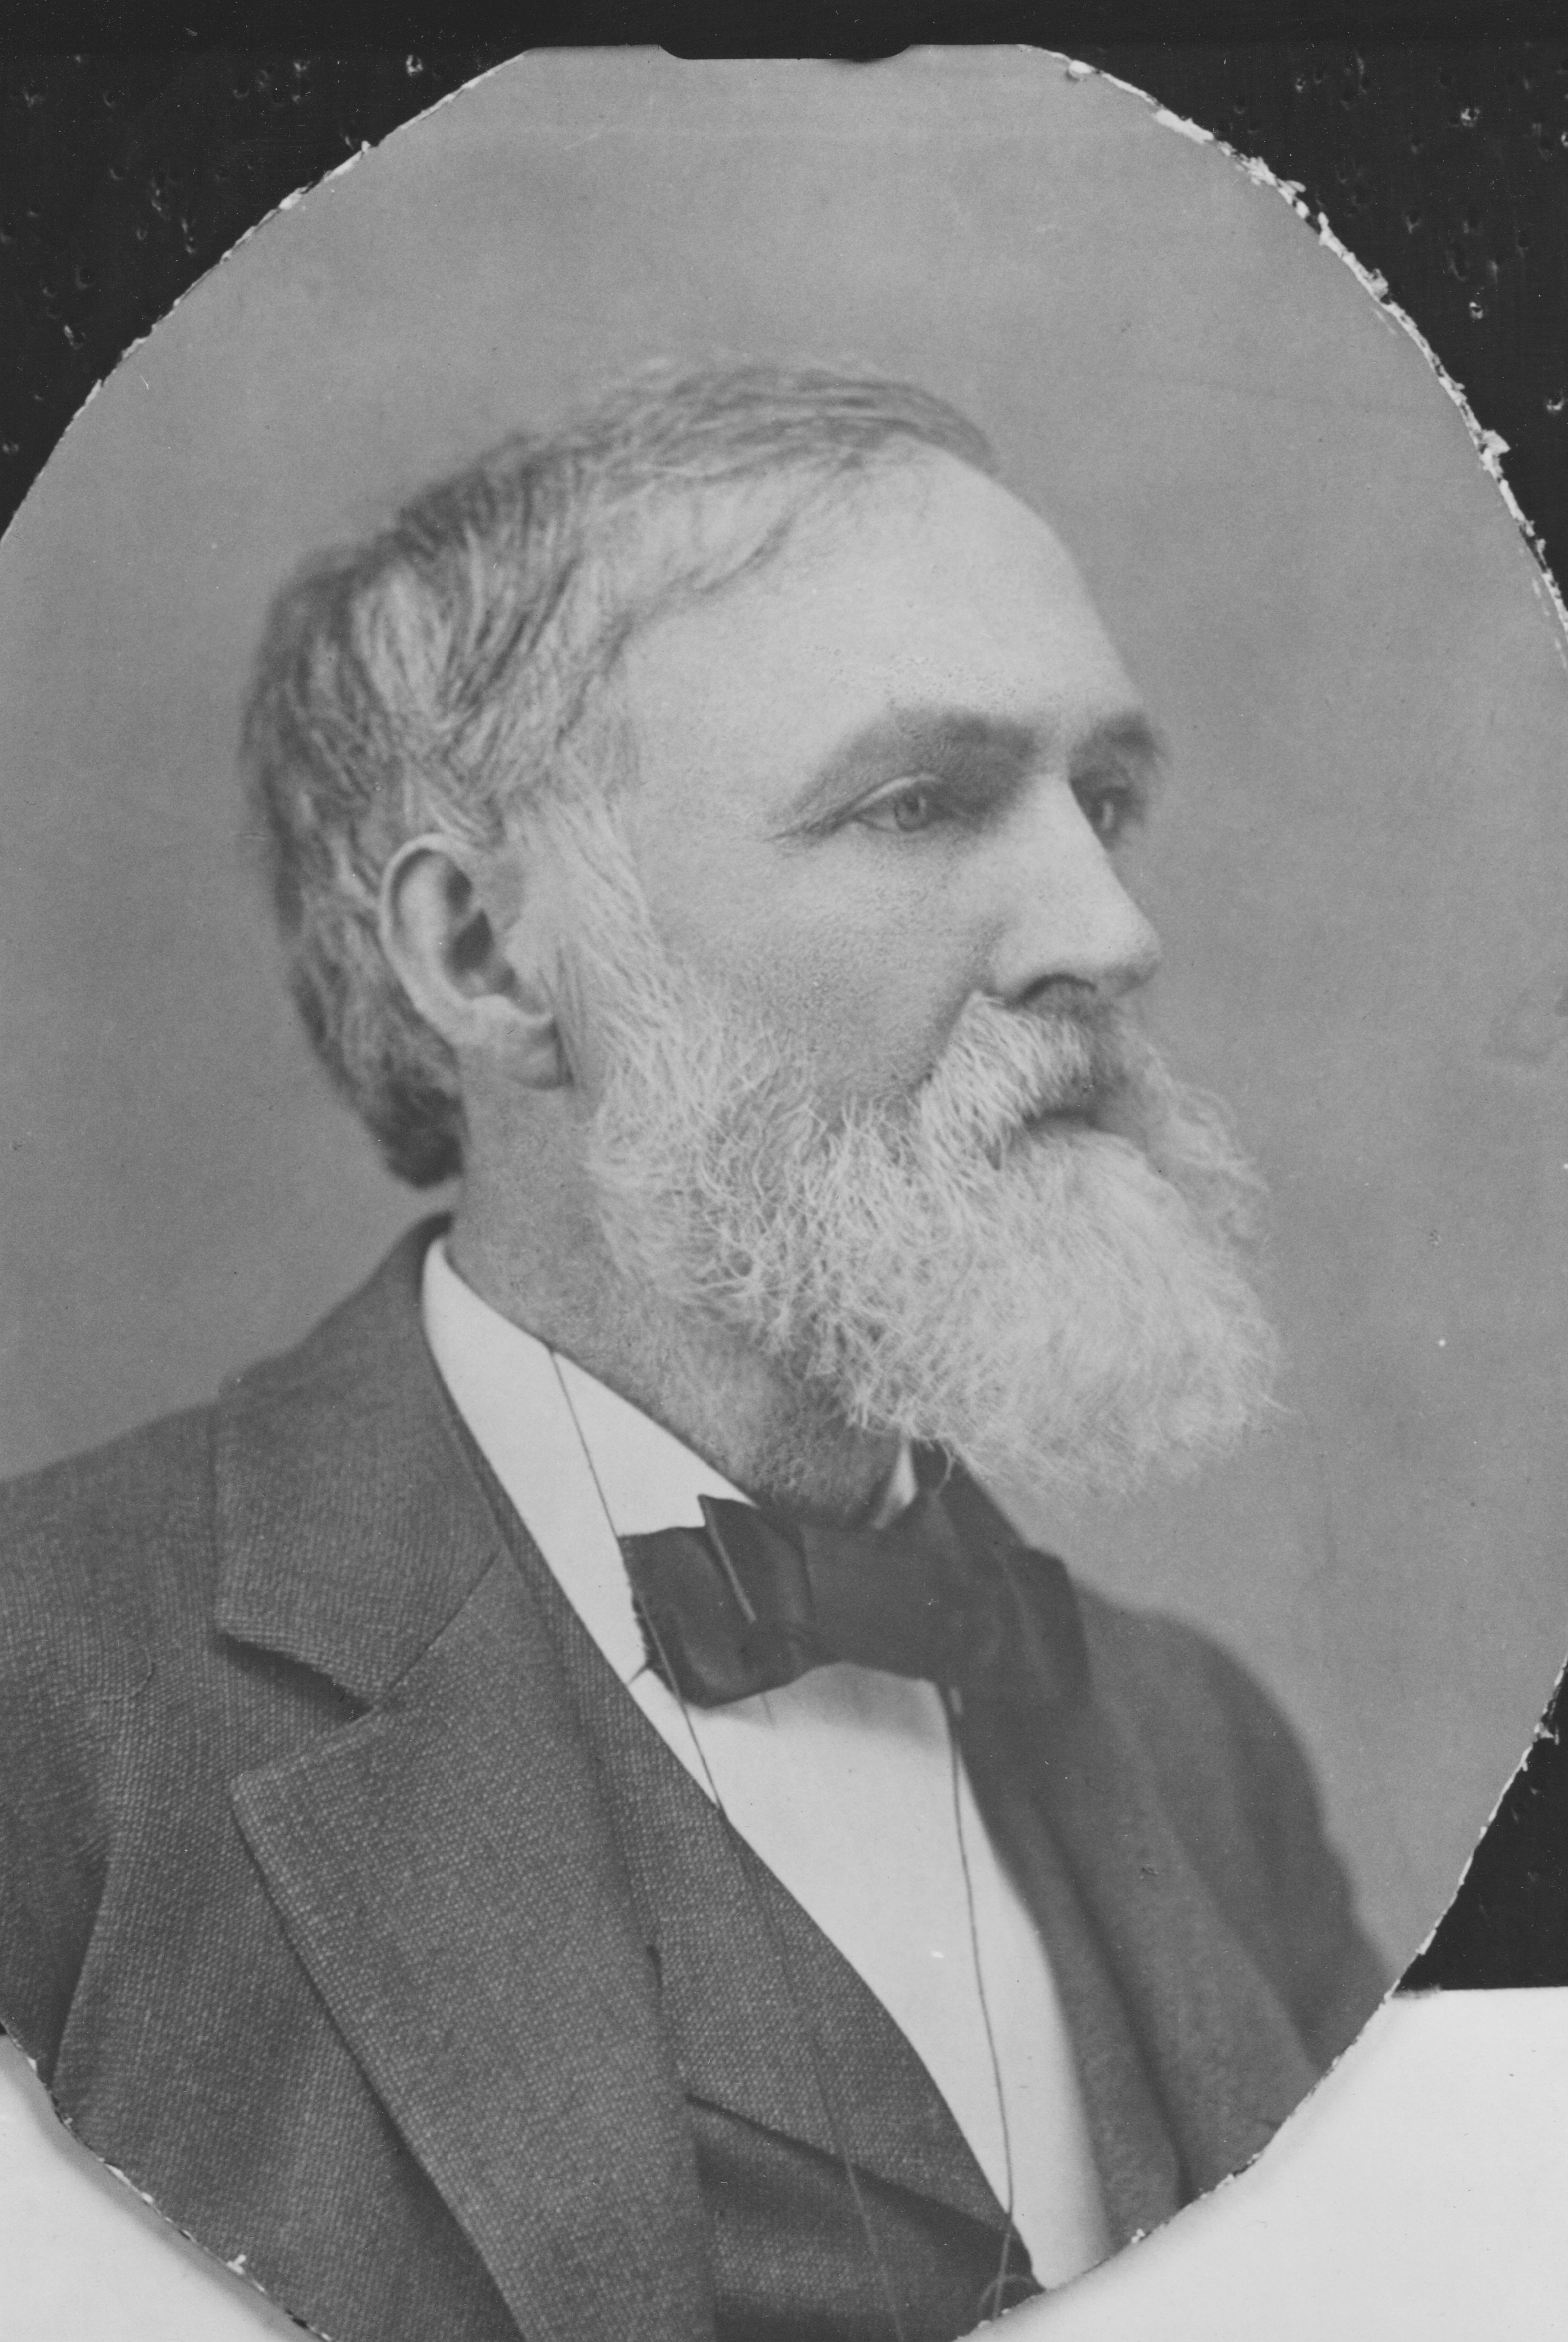 Charles P Tenney, son of John, Houlton pioneer and merchant